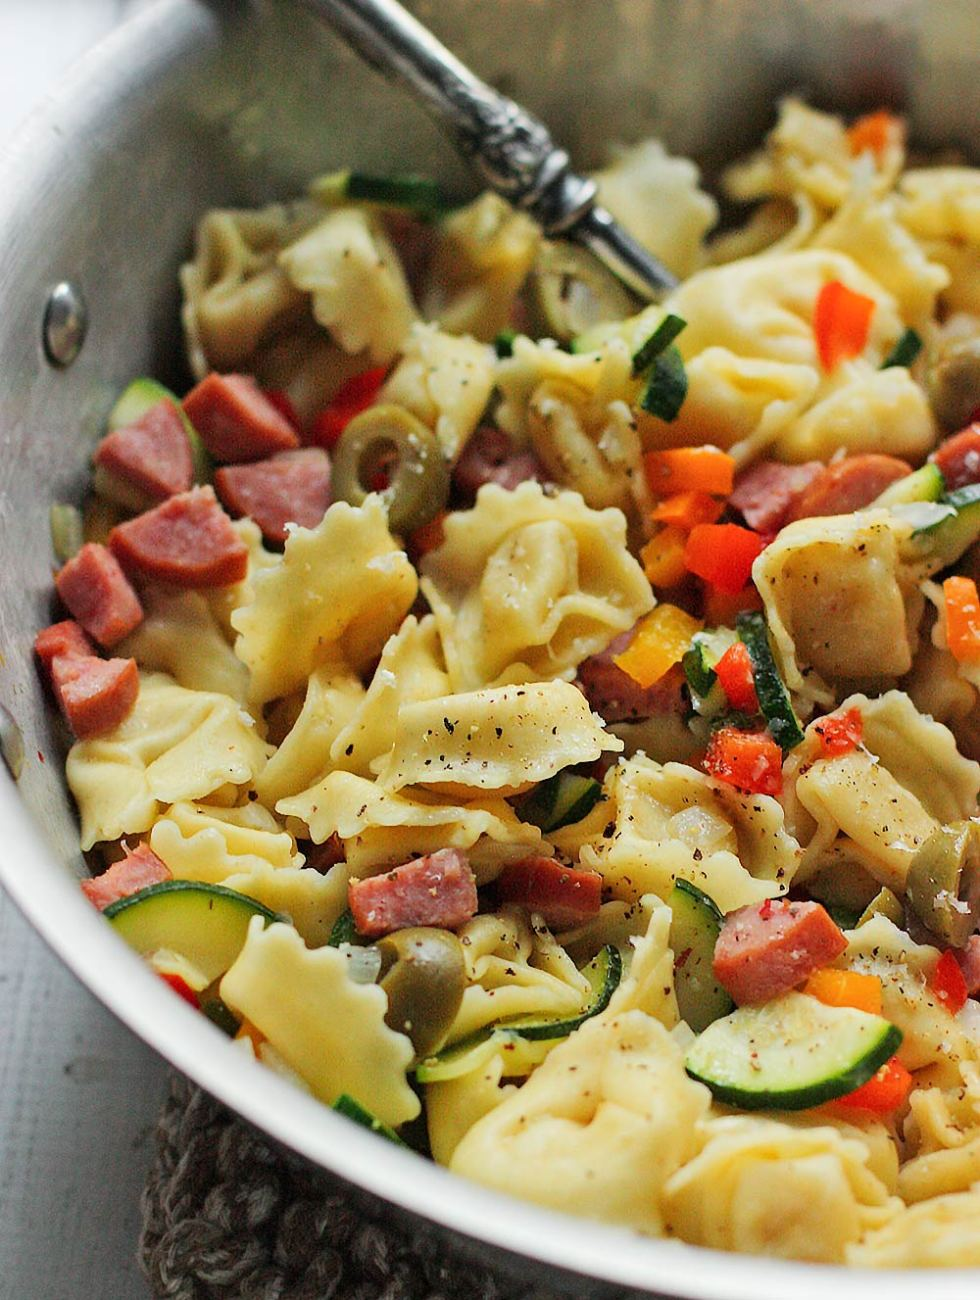 Smoked Turkey Sausage Tortellini Vegetable Saute with Garlic Sauce from Soupaddict.com